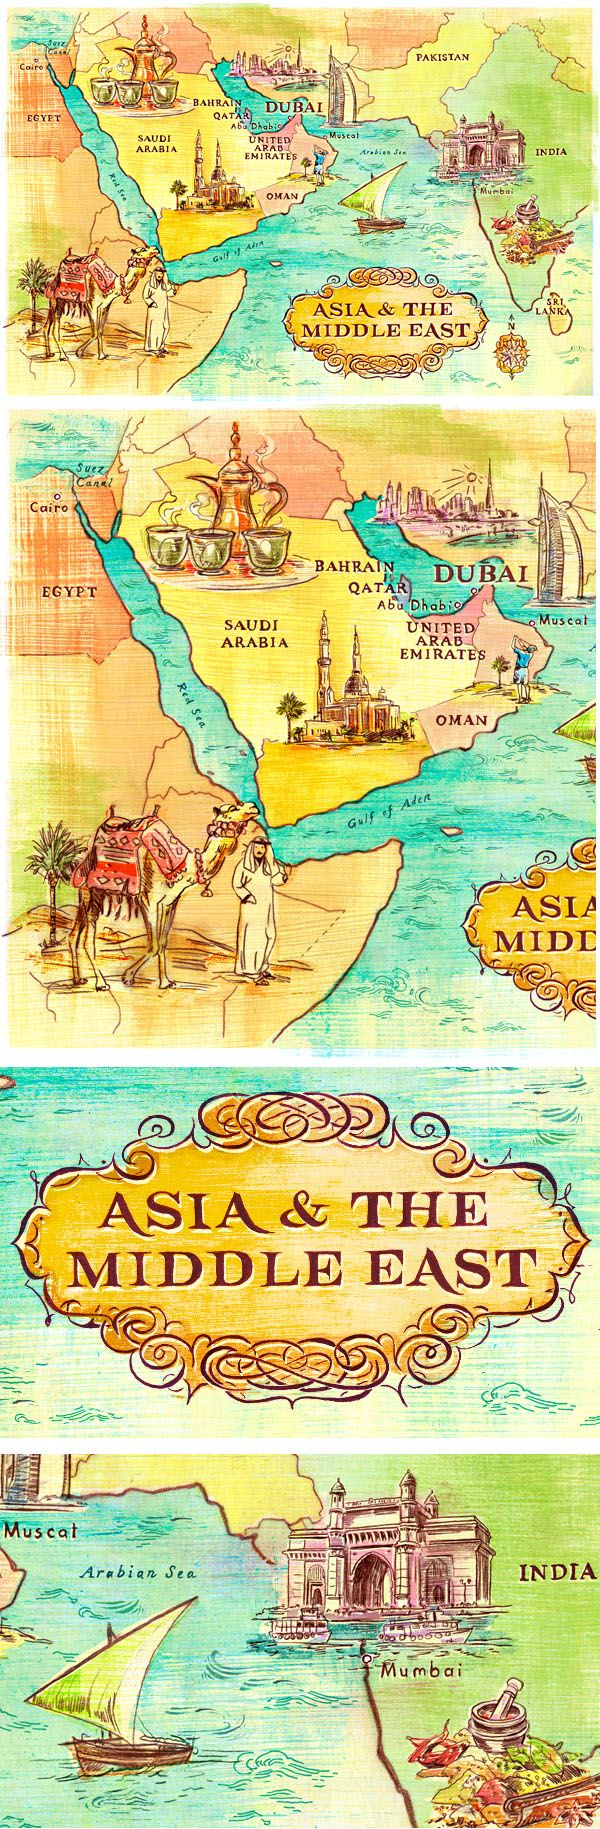 Asia The Middle East Ilrative Map Jacqui Oakley Ilration